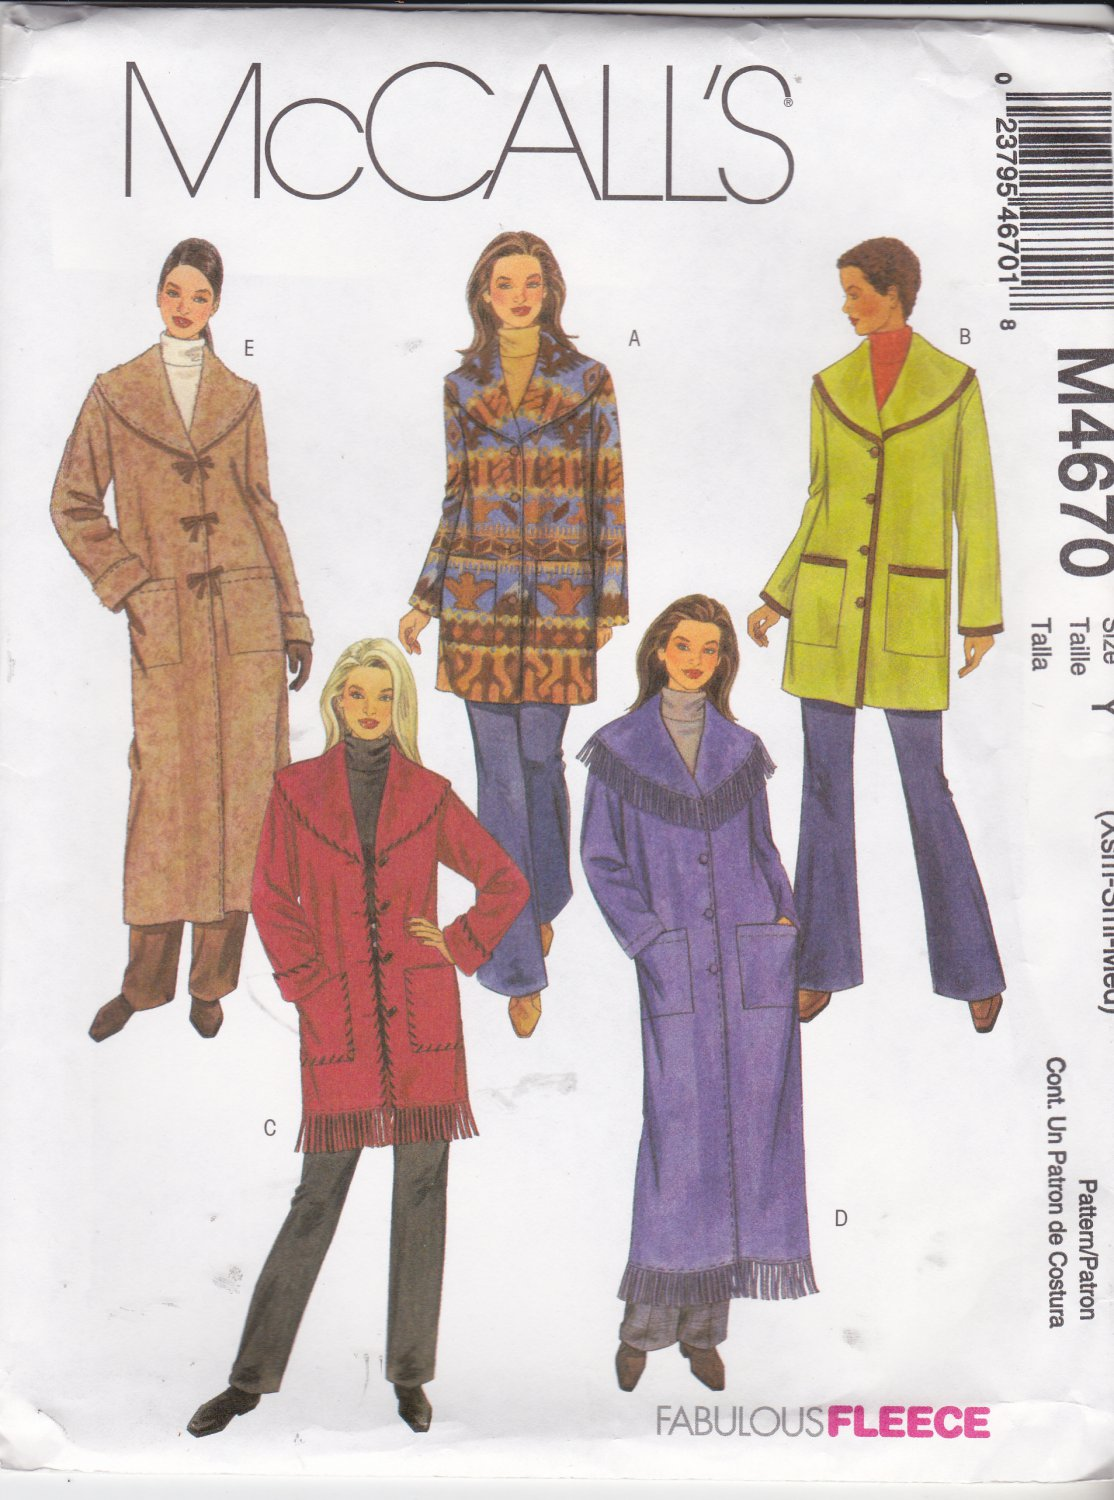 McCall's Sewing Pattern 4670 Misses Size 16-22 Fleece Wool Unlined Button Front Jackets Coats